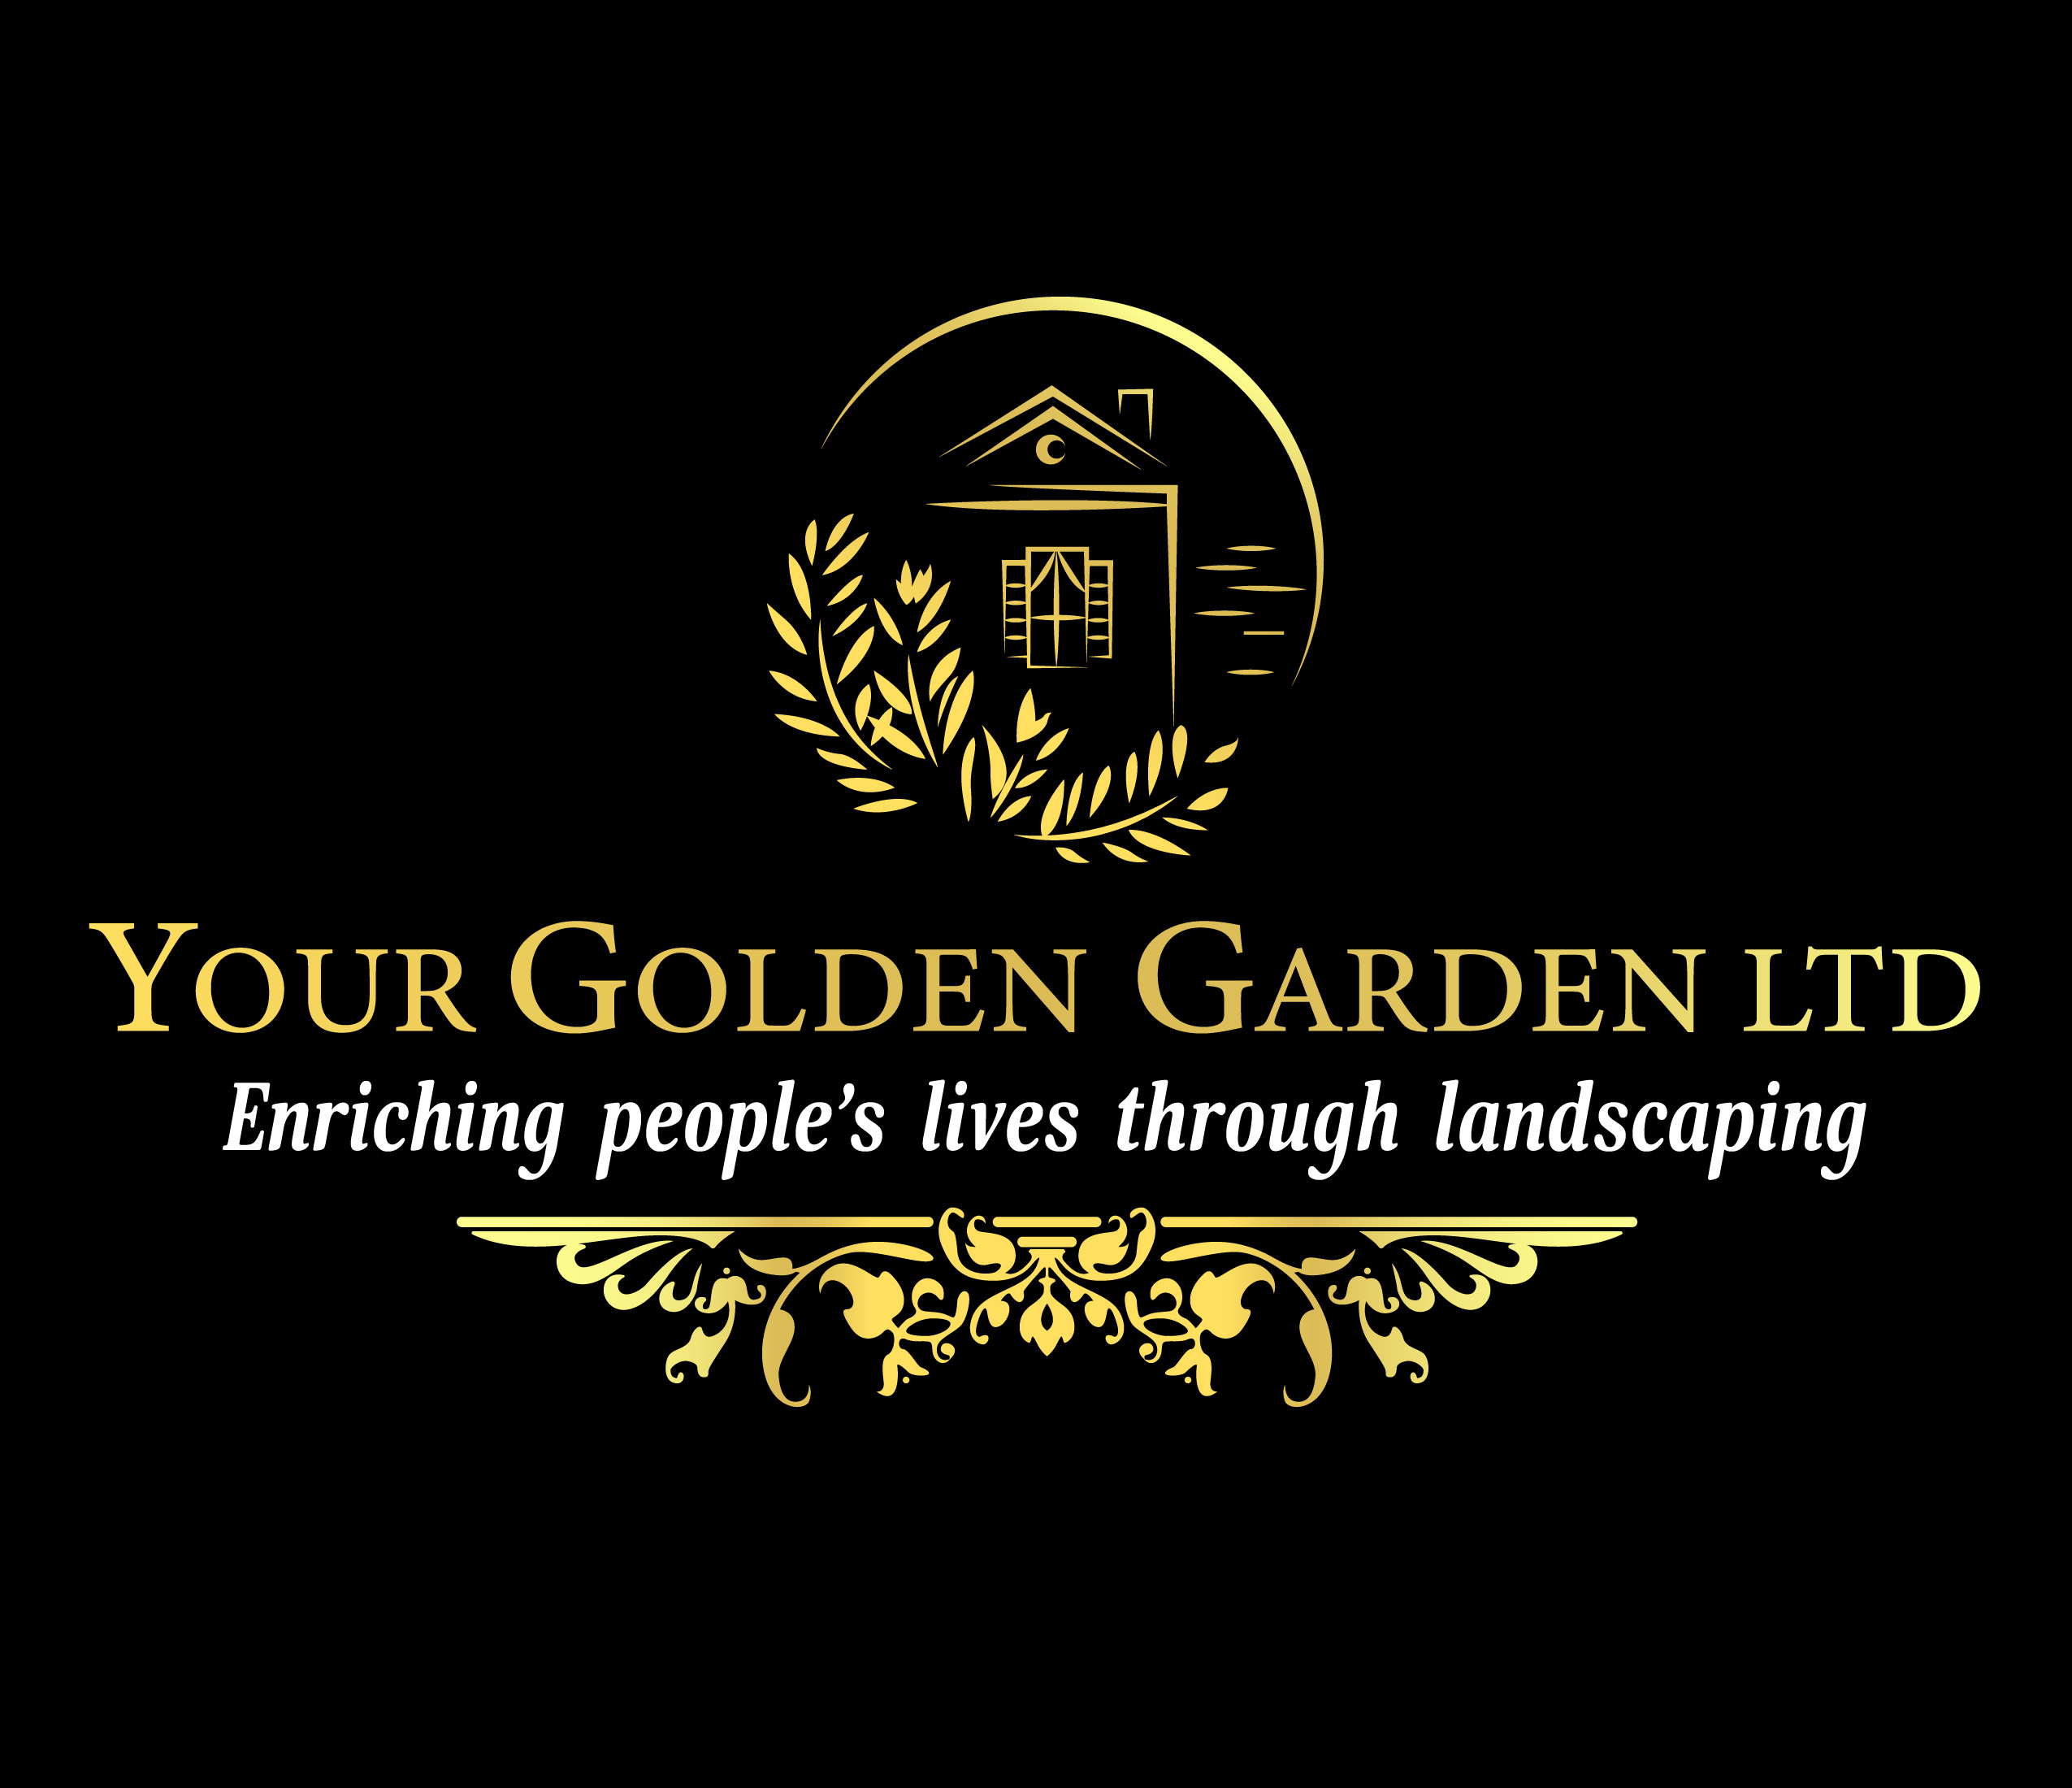 Your Golden Garden Ltd